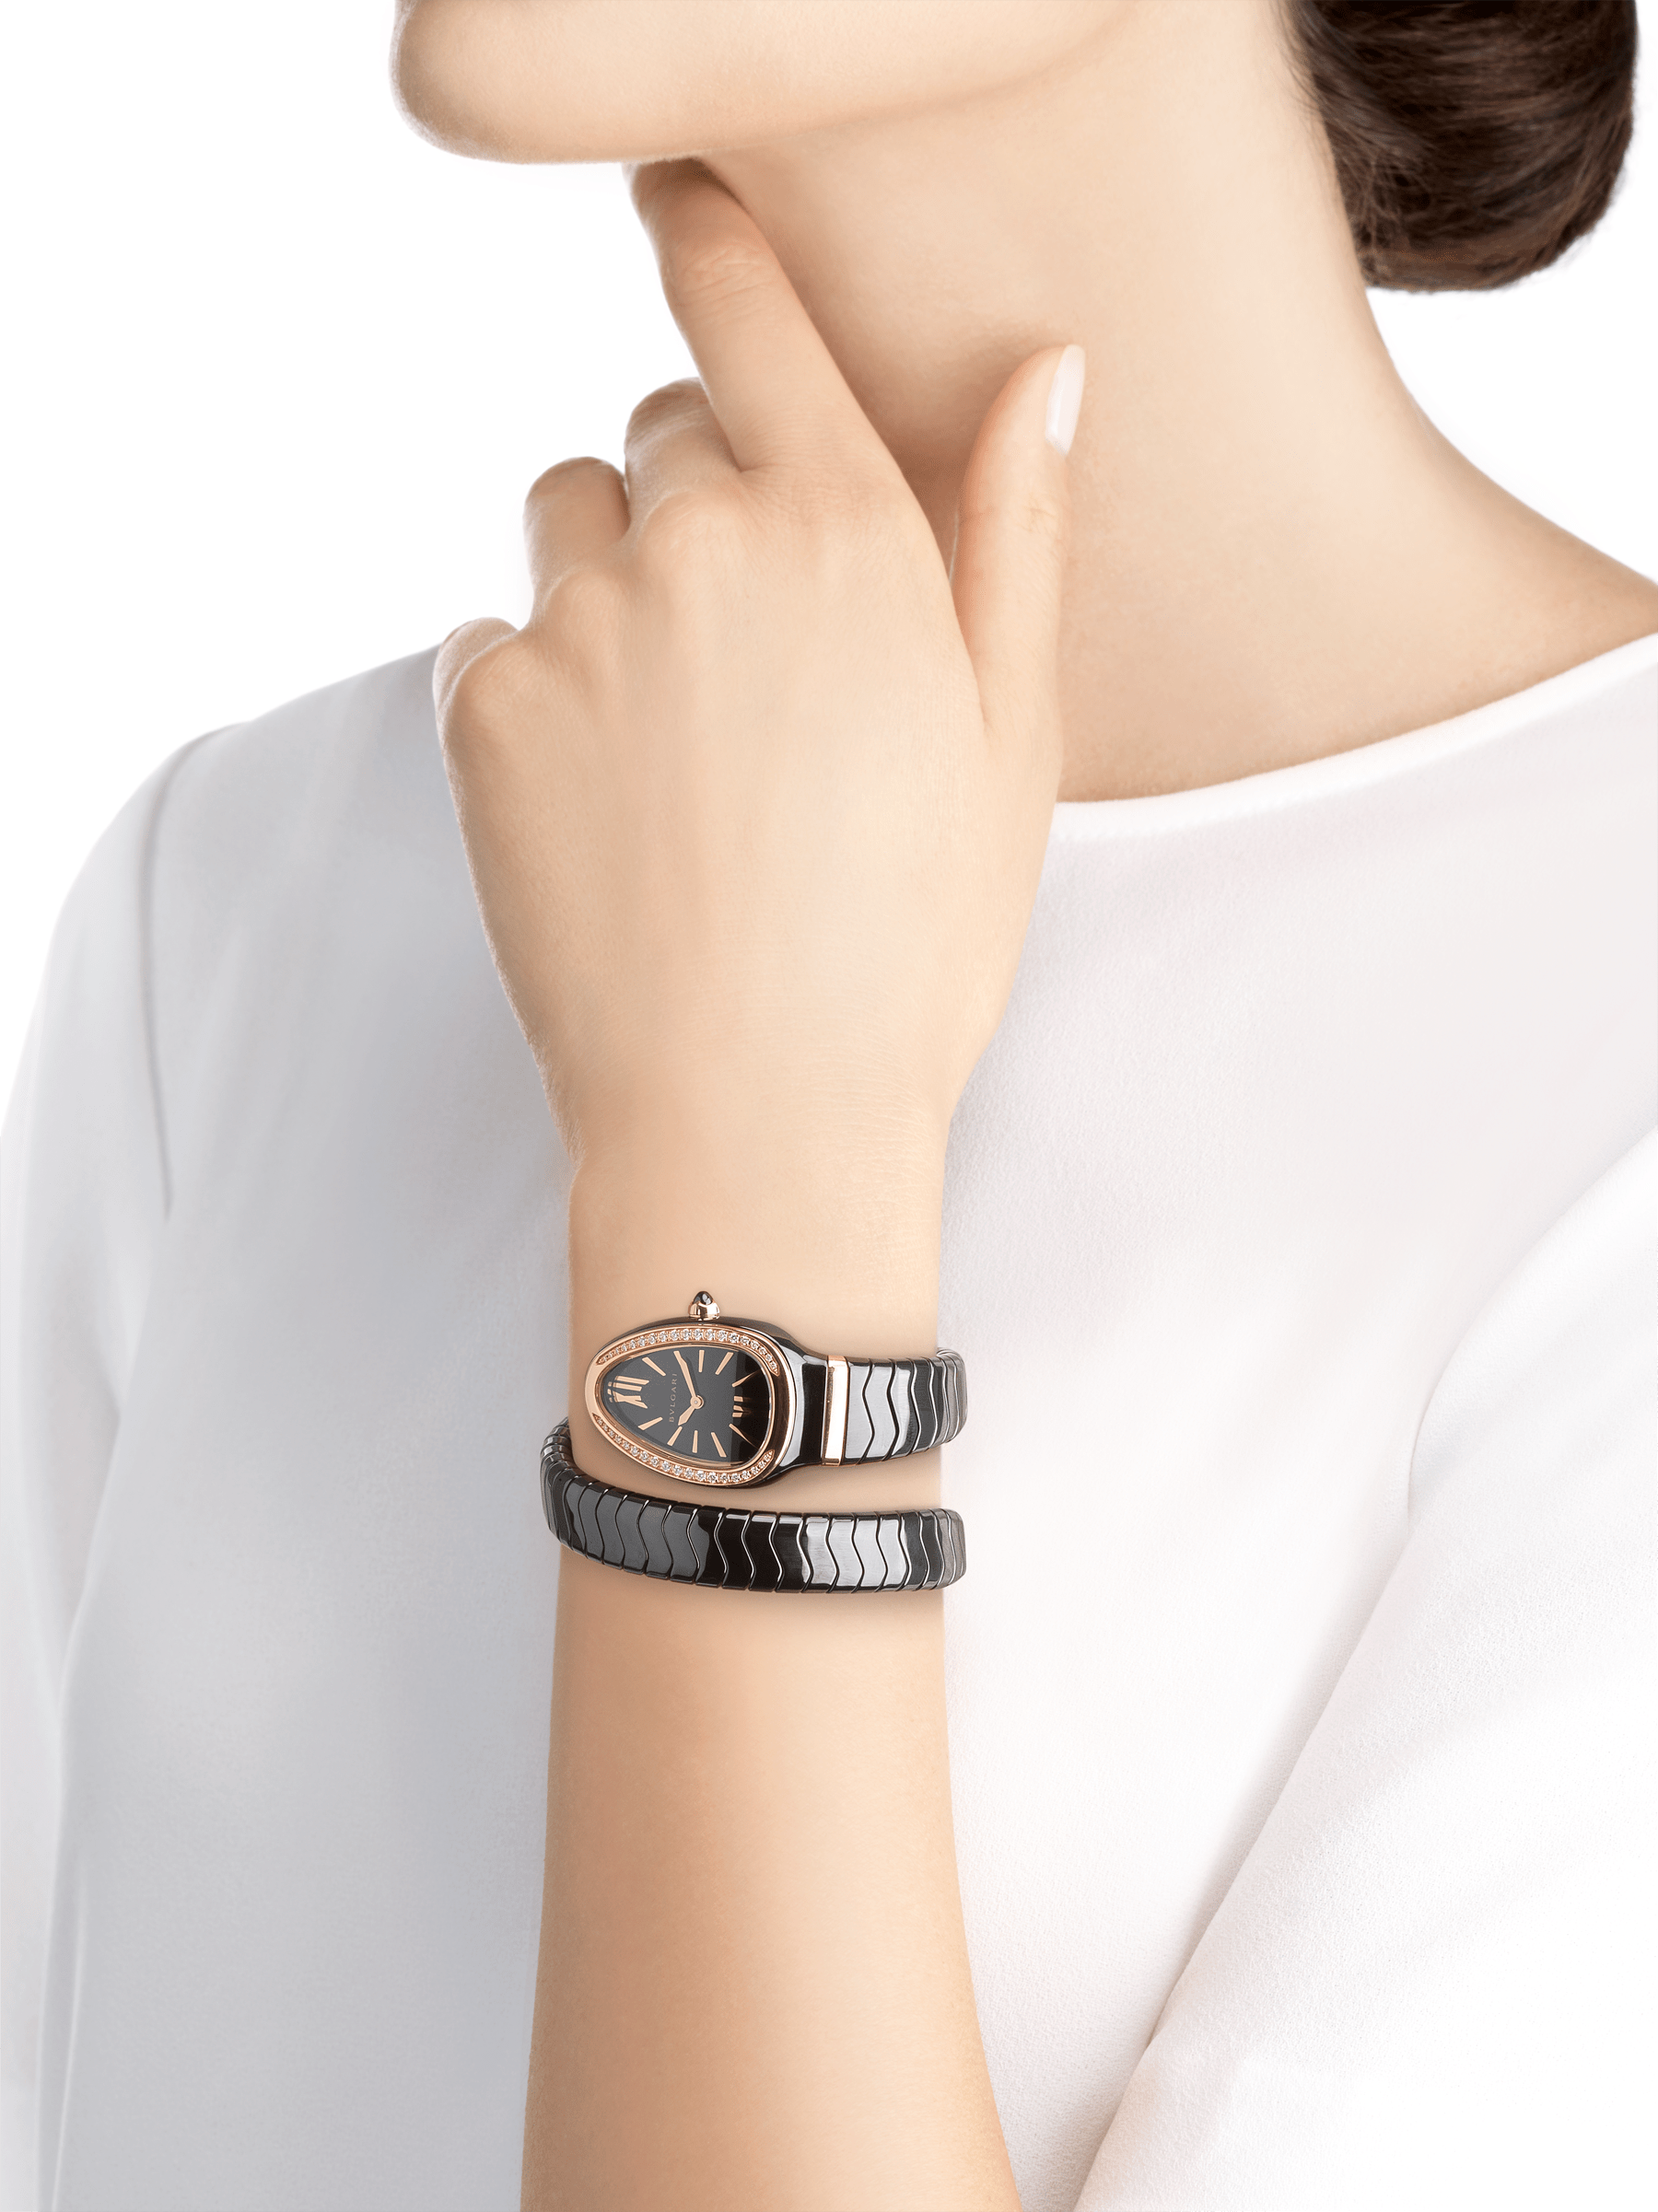 Serpenti Spiga single spiral watch with black ceramic case, 18 kt rose gold bezel set with brilliant cut diamonds, black lacquered dial, black ceramic bracelet with 18 kt rose gold elements. 102532 image 4